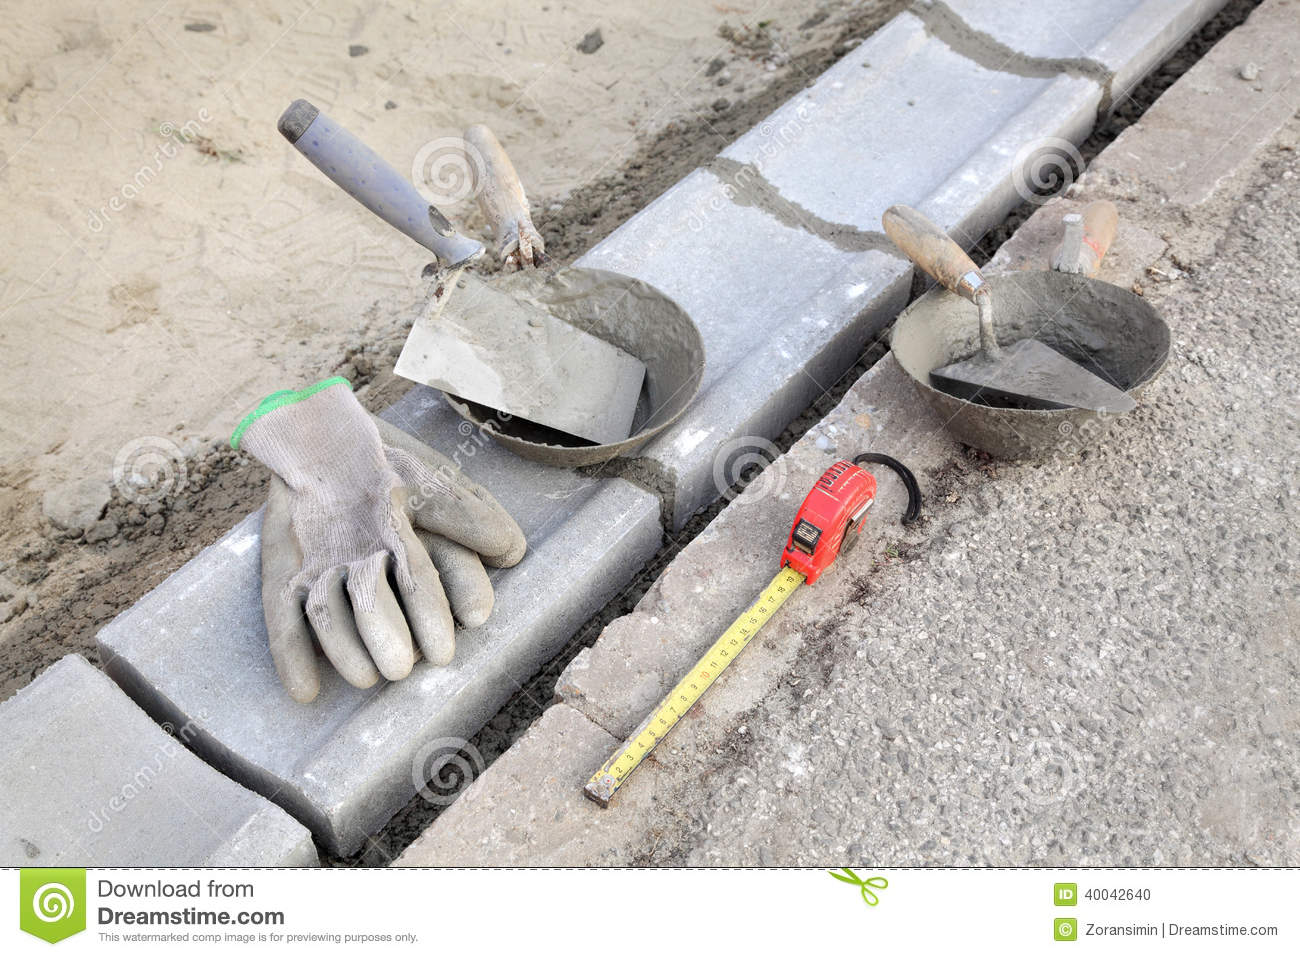 Chantier de construction pierre de restriction et outils for Outil de construction